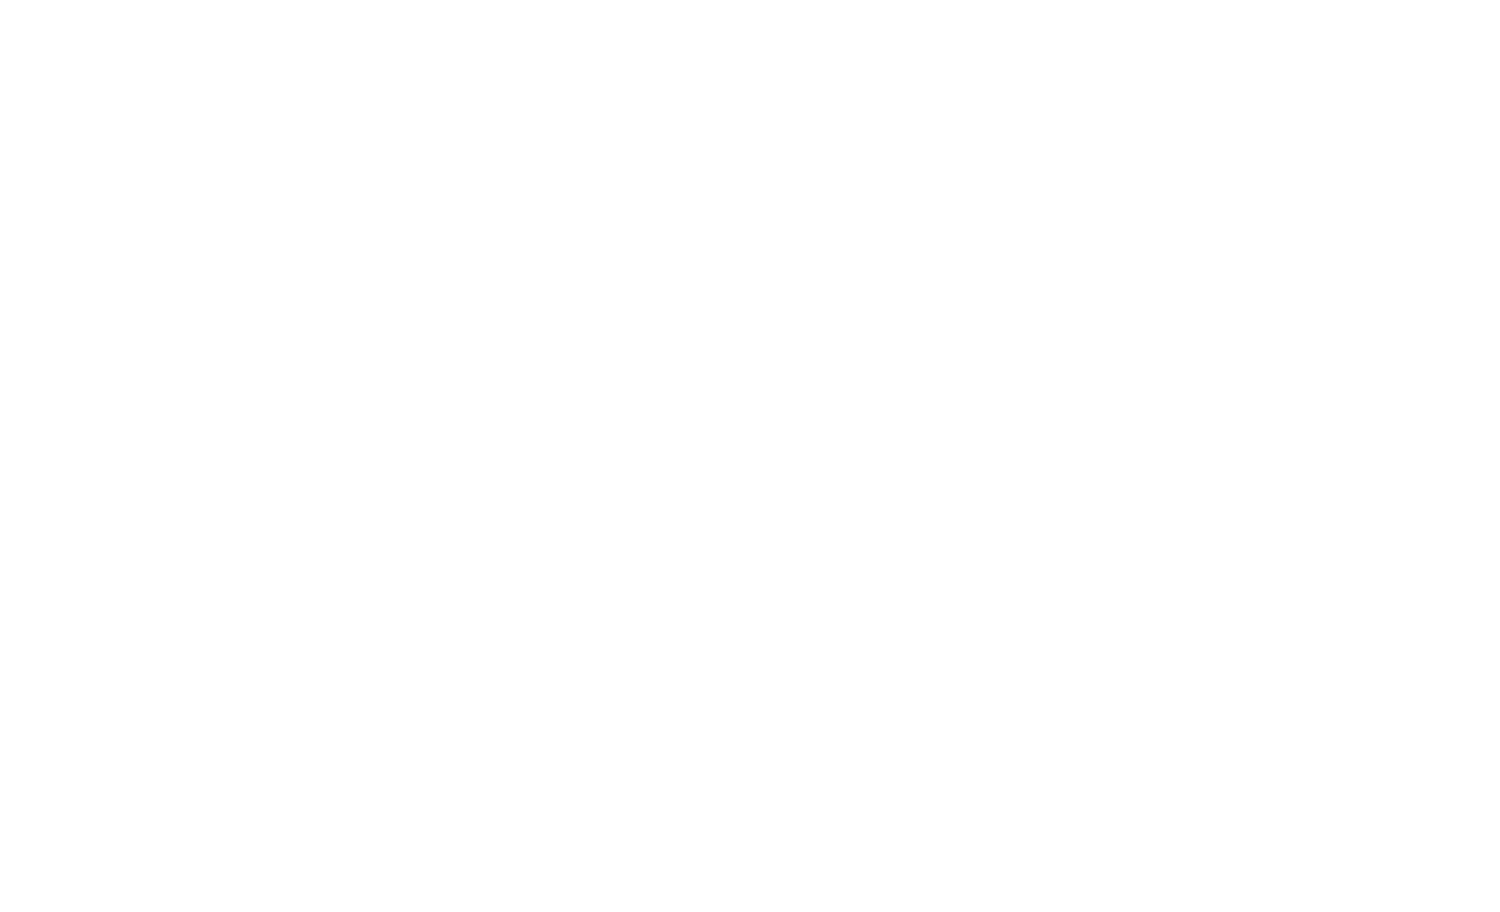 Always Friday Co. Integrated Marketing Services